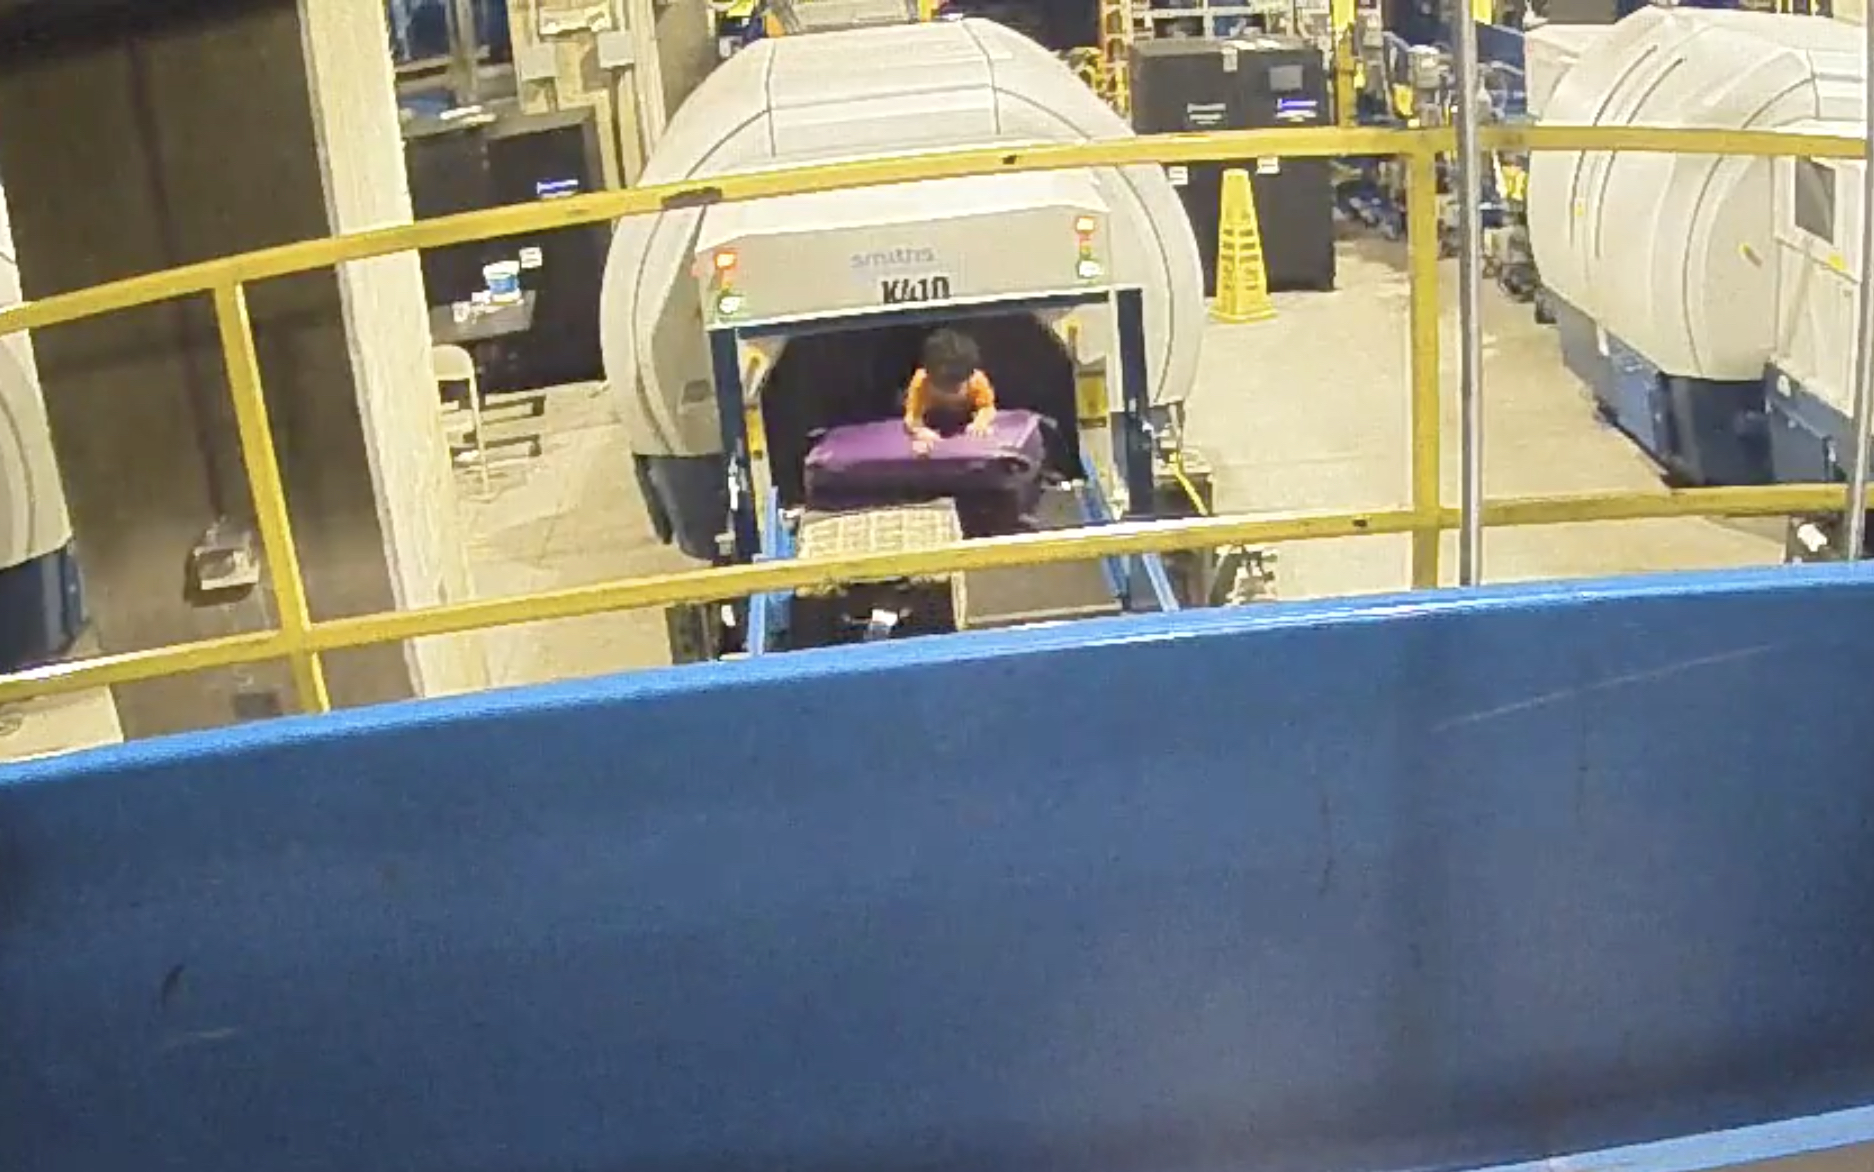 Toddler rides on U.S.  airport conveyor belt